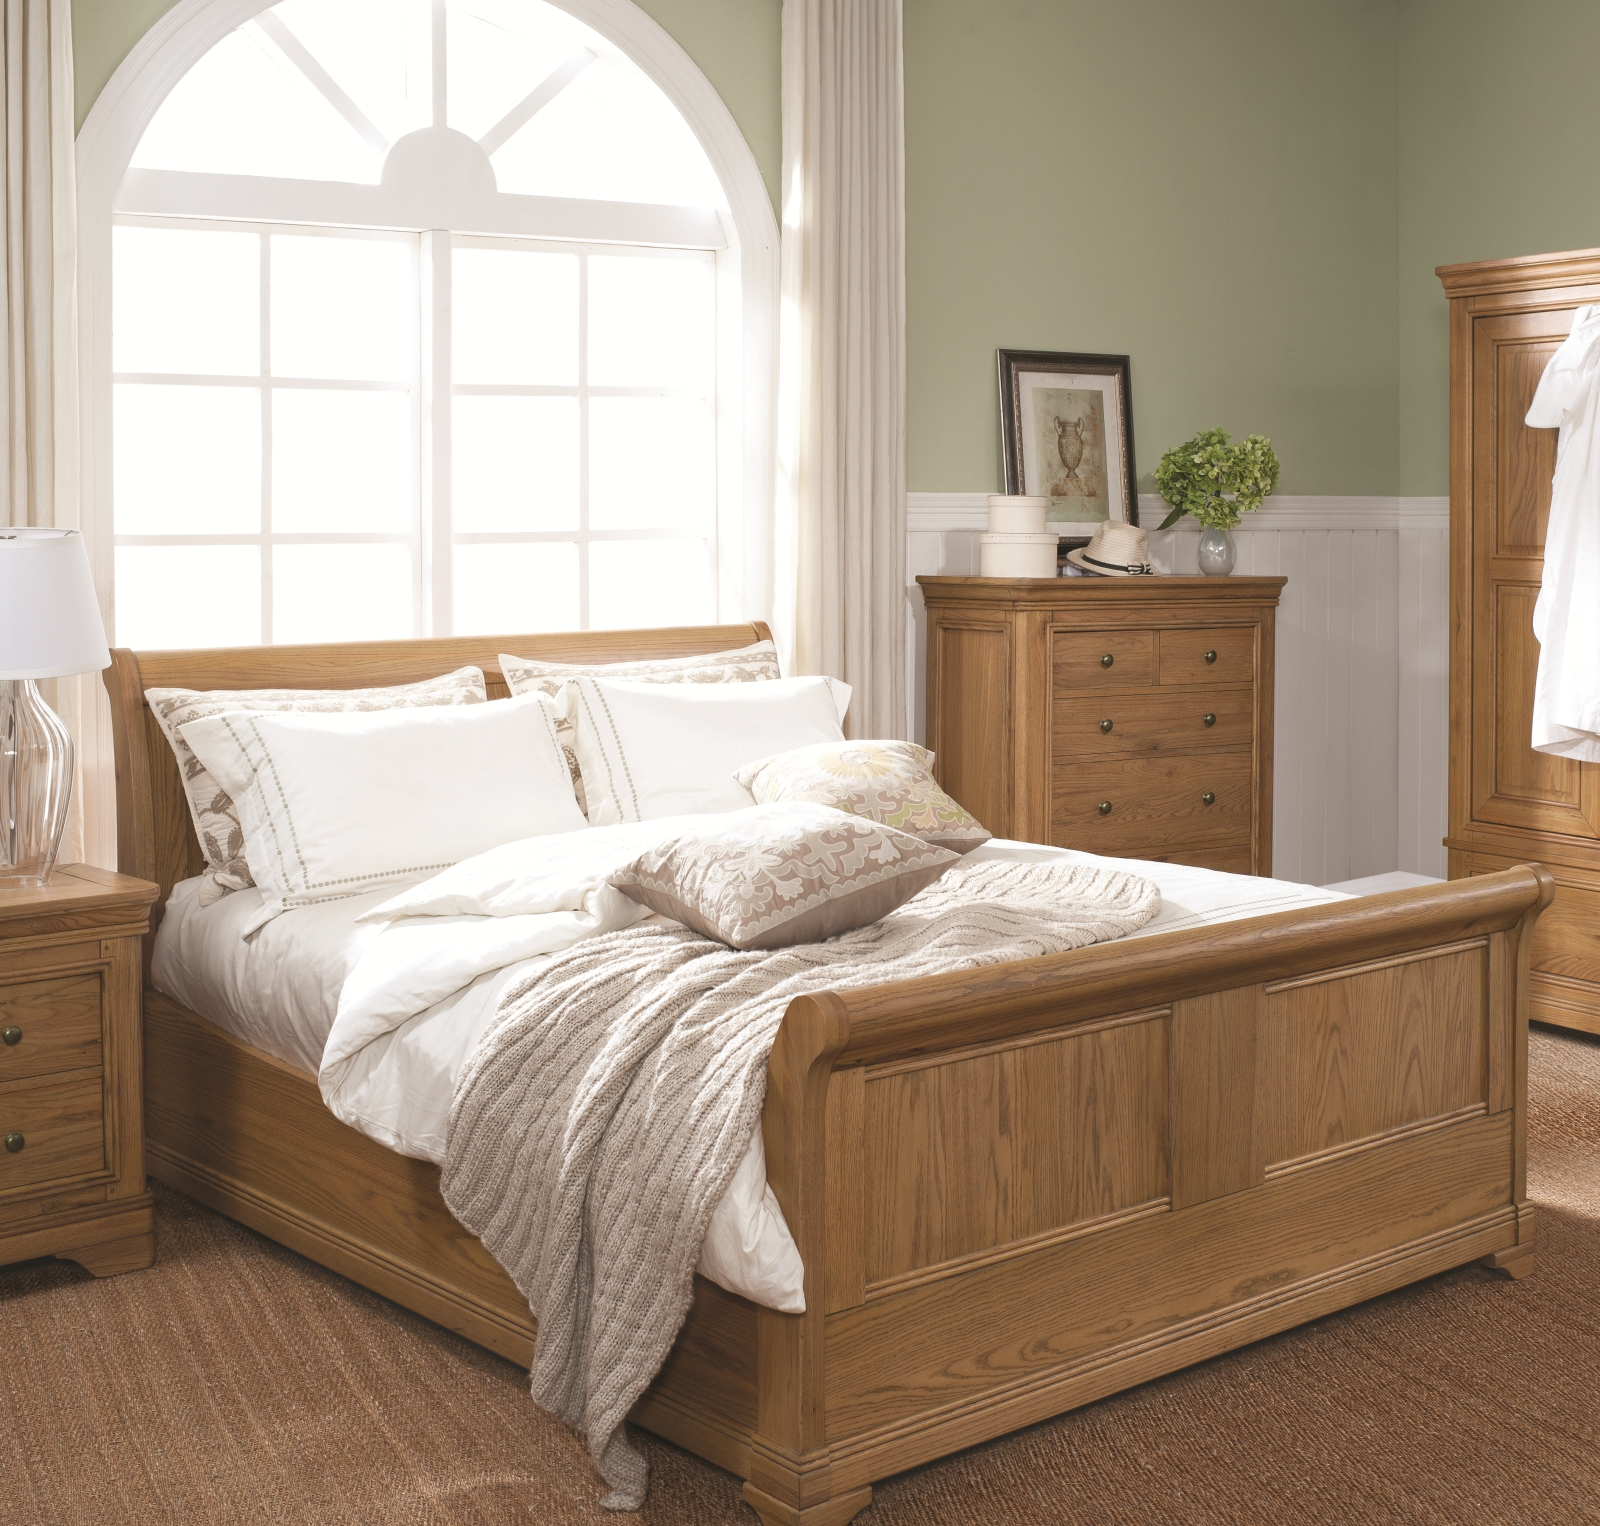 http://classicfurn.co.uk/media/download/frco%20bedroom%20setting_hires.jpg